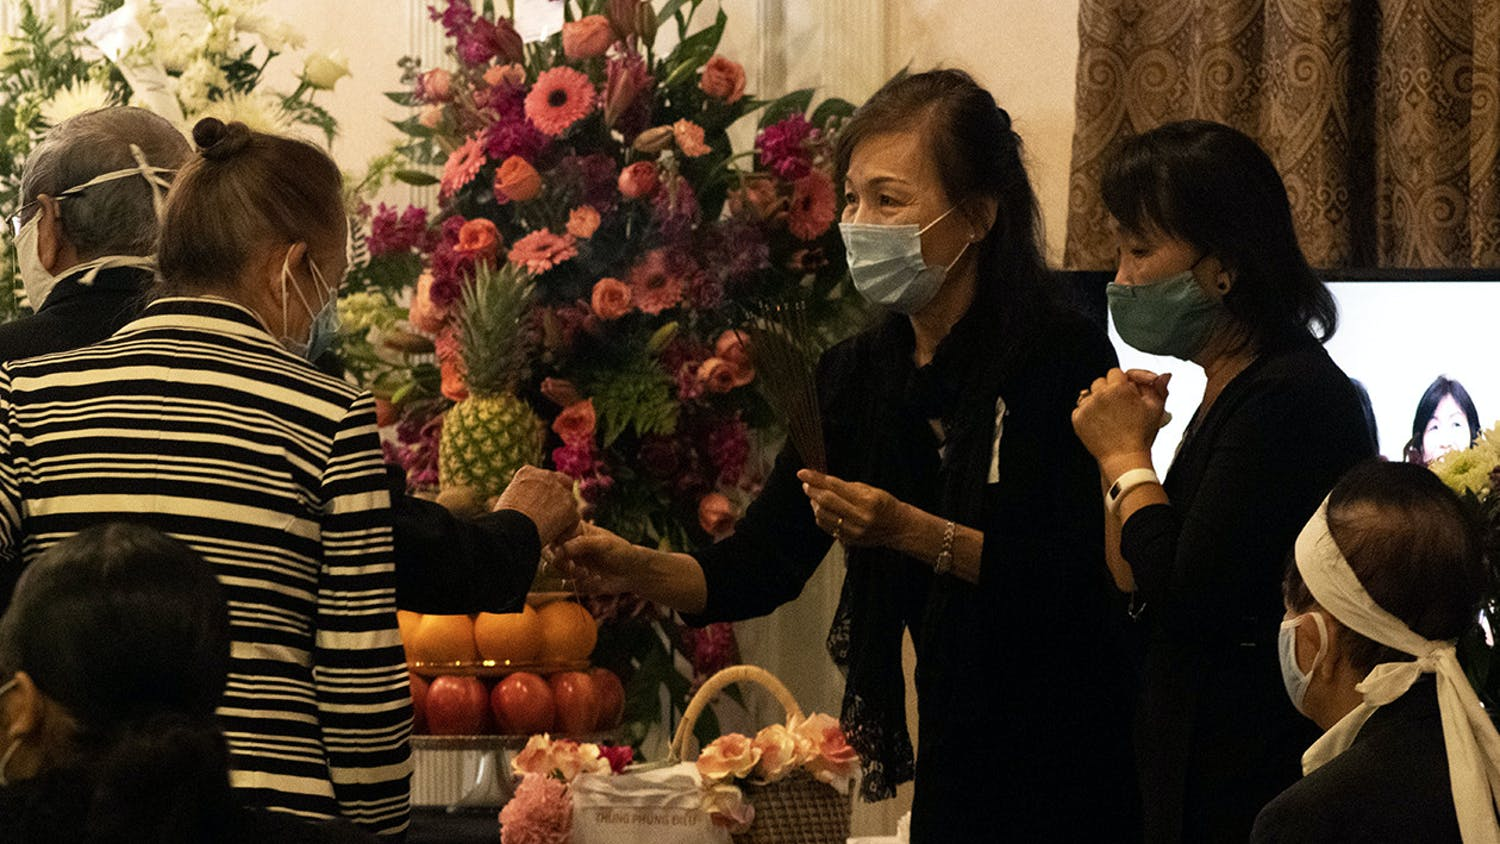 Two people hand out sticks of incense during the funeral of Bach Lien Tong Duong on Wednesday, April 14, 2021. Duong was a volunteer who taught Vietnamese at UF before an official position was created and played a significant role in creating the annual Pho fundraiser for the Vietnamese Student Organization before she passed away.